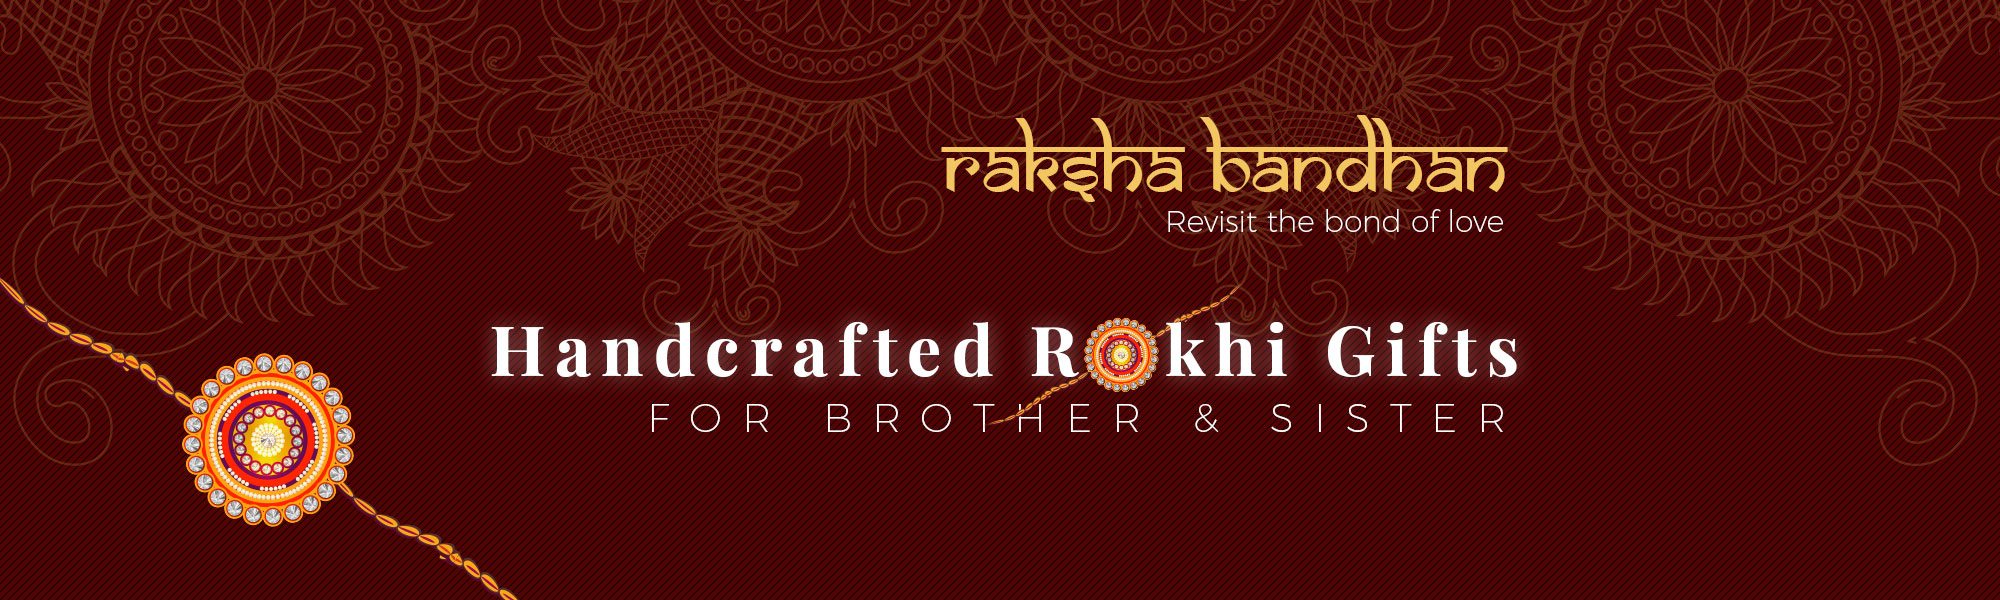 This Rakshabandhan revisit the bond of love